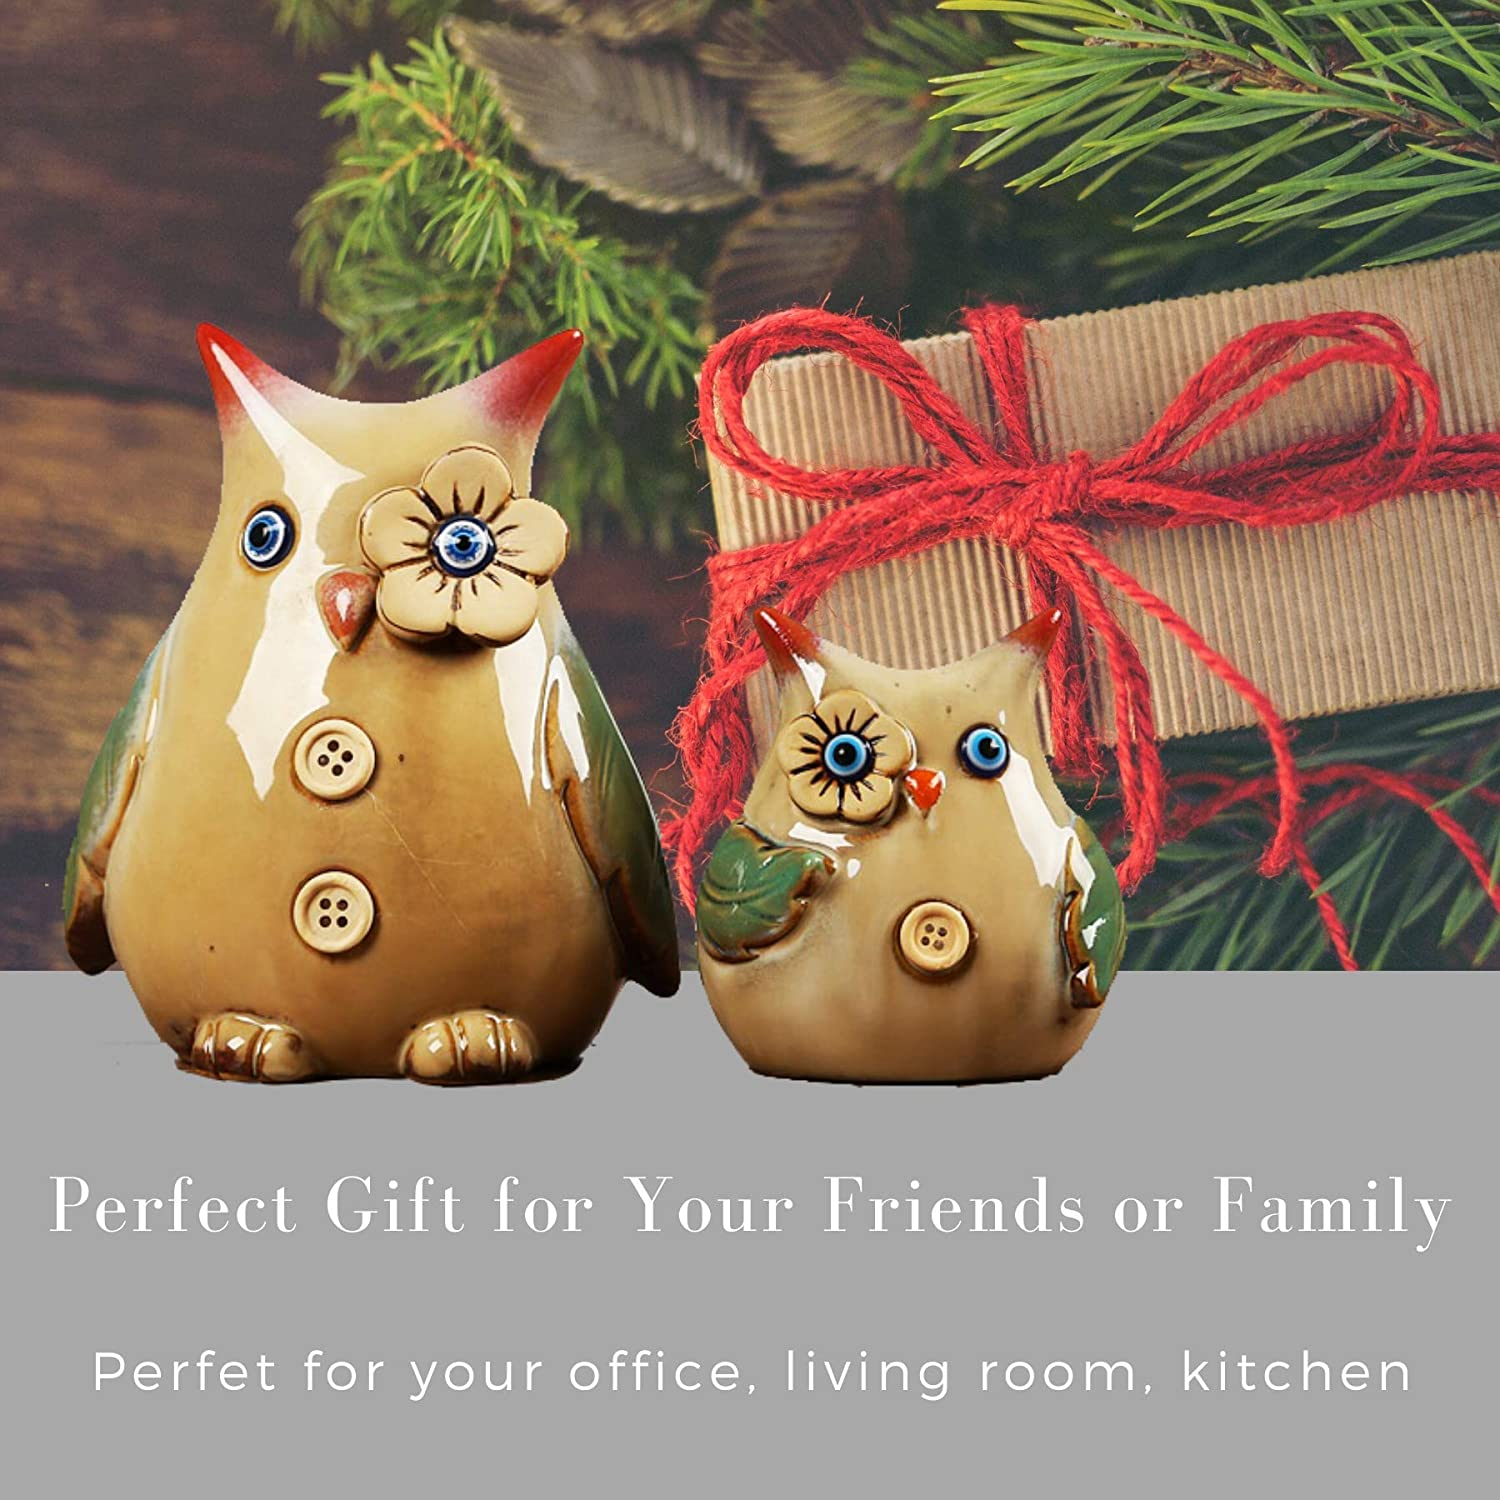 Bedroom Office Owl Figurine Statue Decor Living Room Set of 2 Great Owl Lovers Gift Idea by Blue Lotus Decor for Home